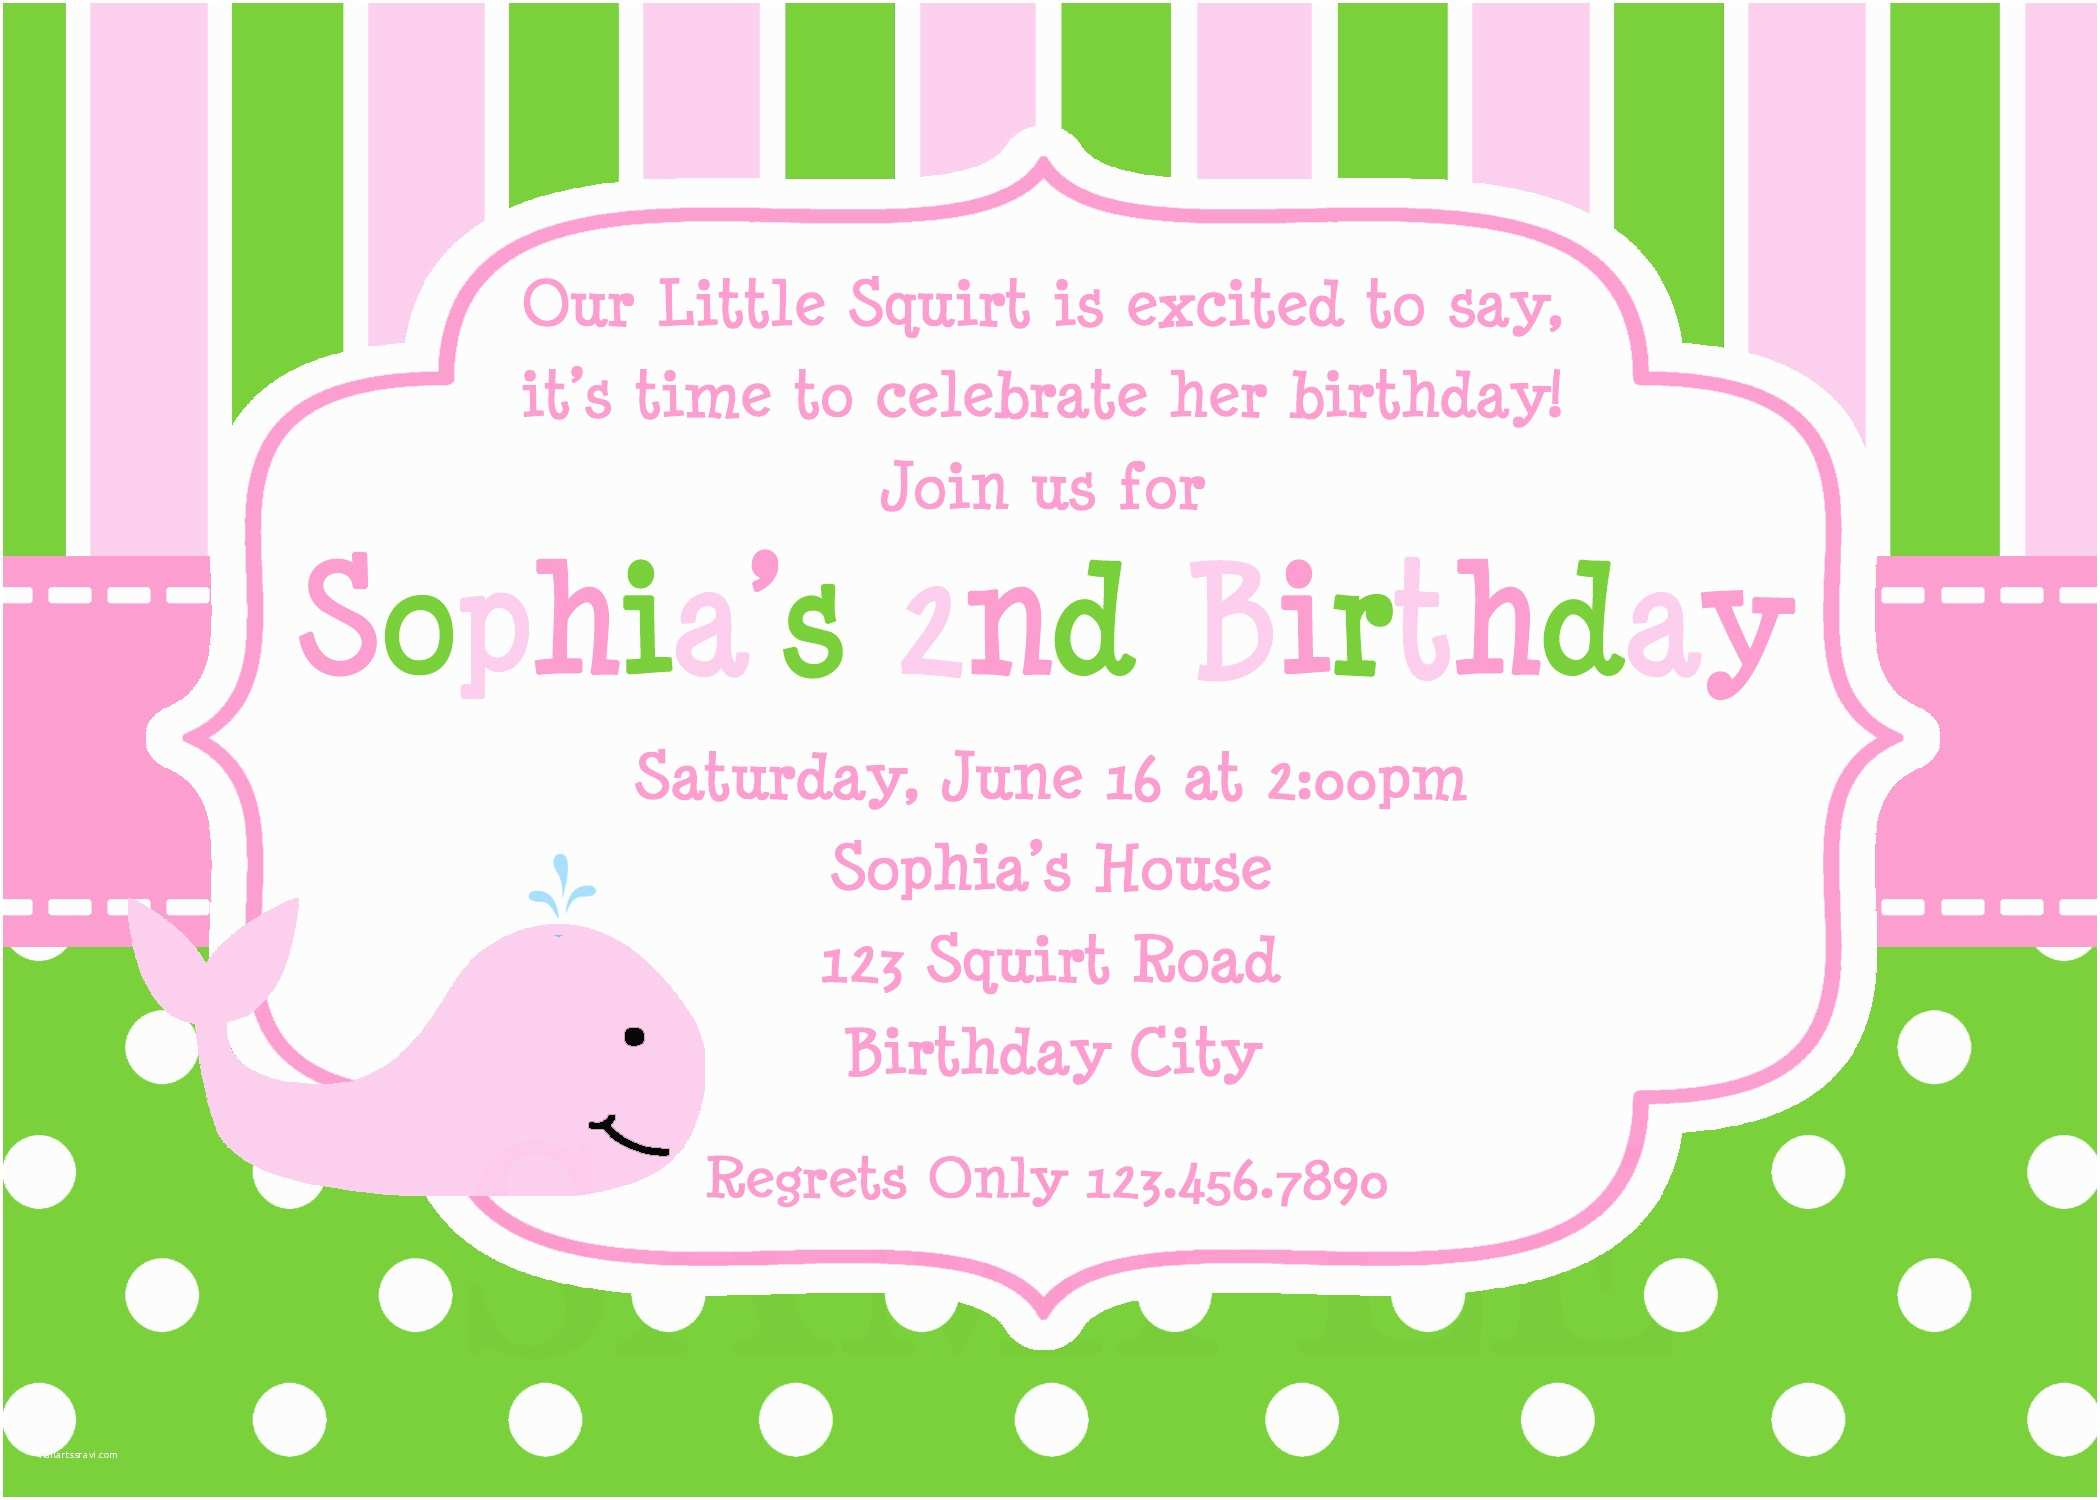 Custom Birthday Invitations How to Design Birthday Invitations